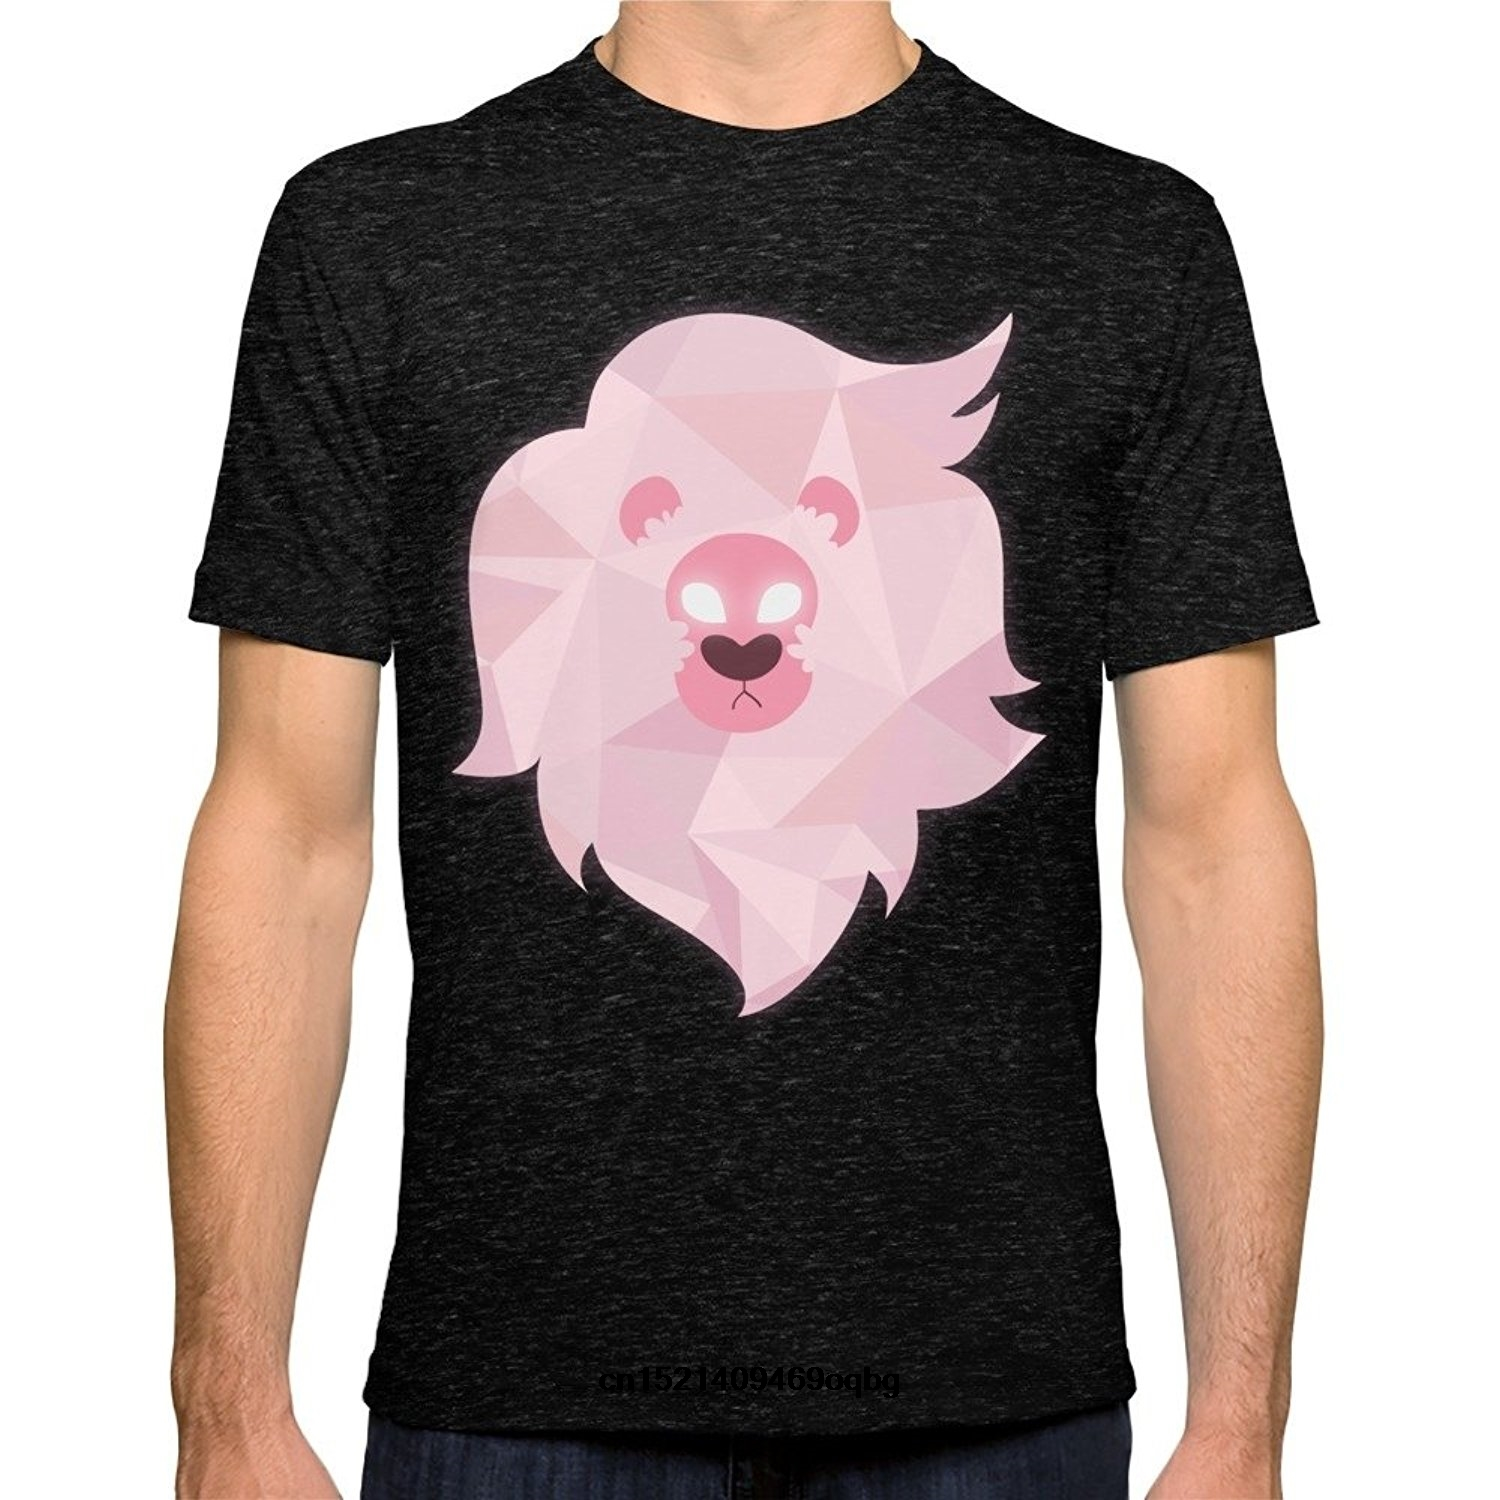 100% Cotton For Casual Printed Tee Size Short Sleeve Men Printing Machine Steven Universe O-Neck T Shirts